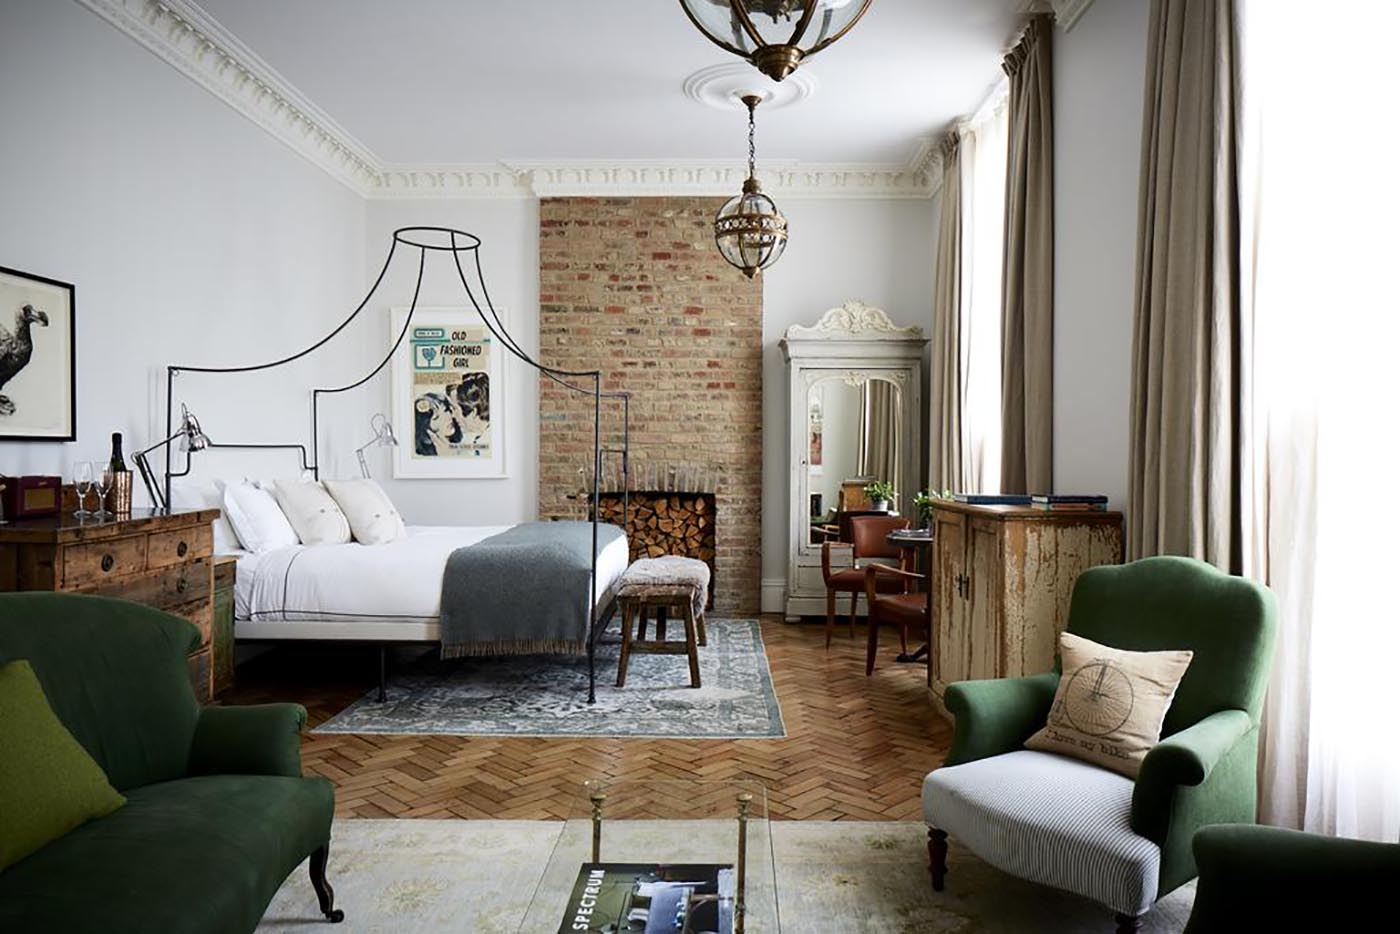 Best hotels in london 2018 edition the discoveries of for Small boutique hotels london